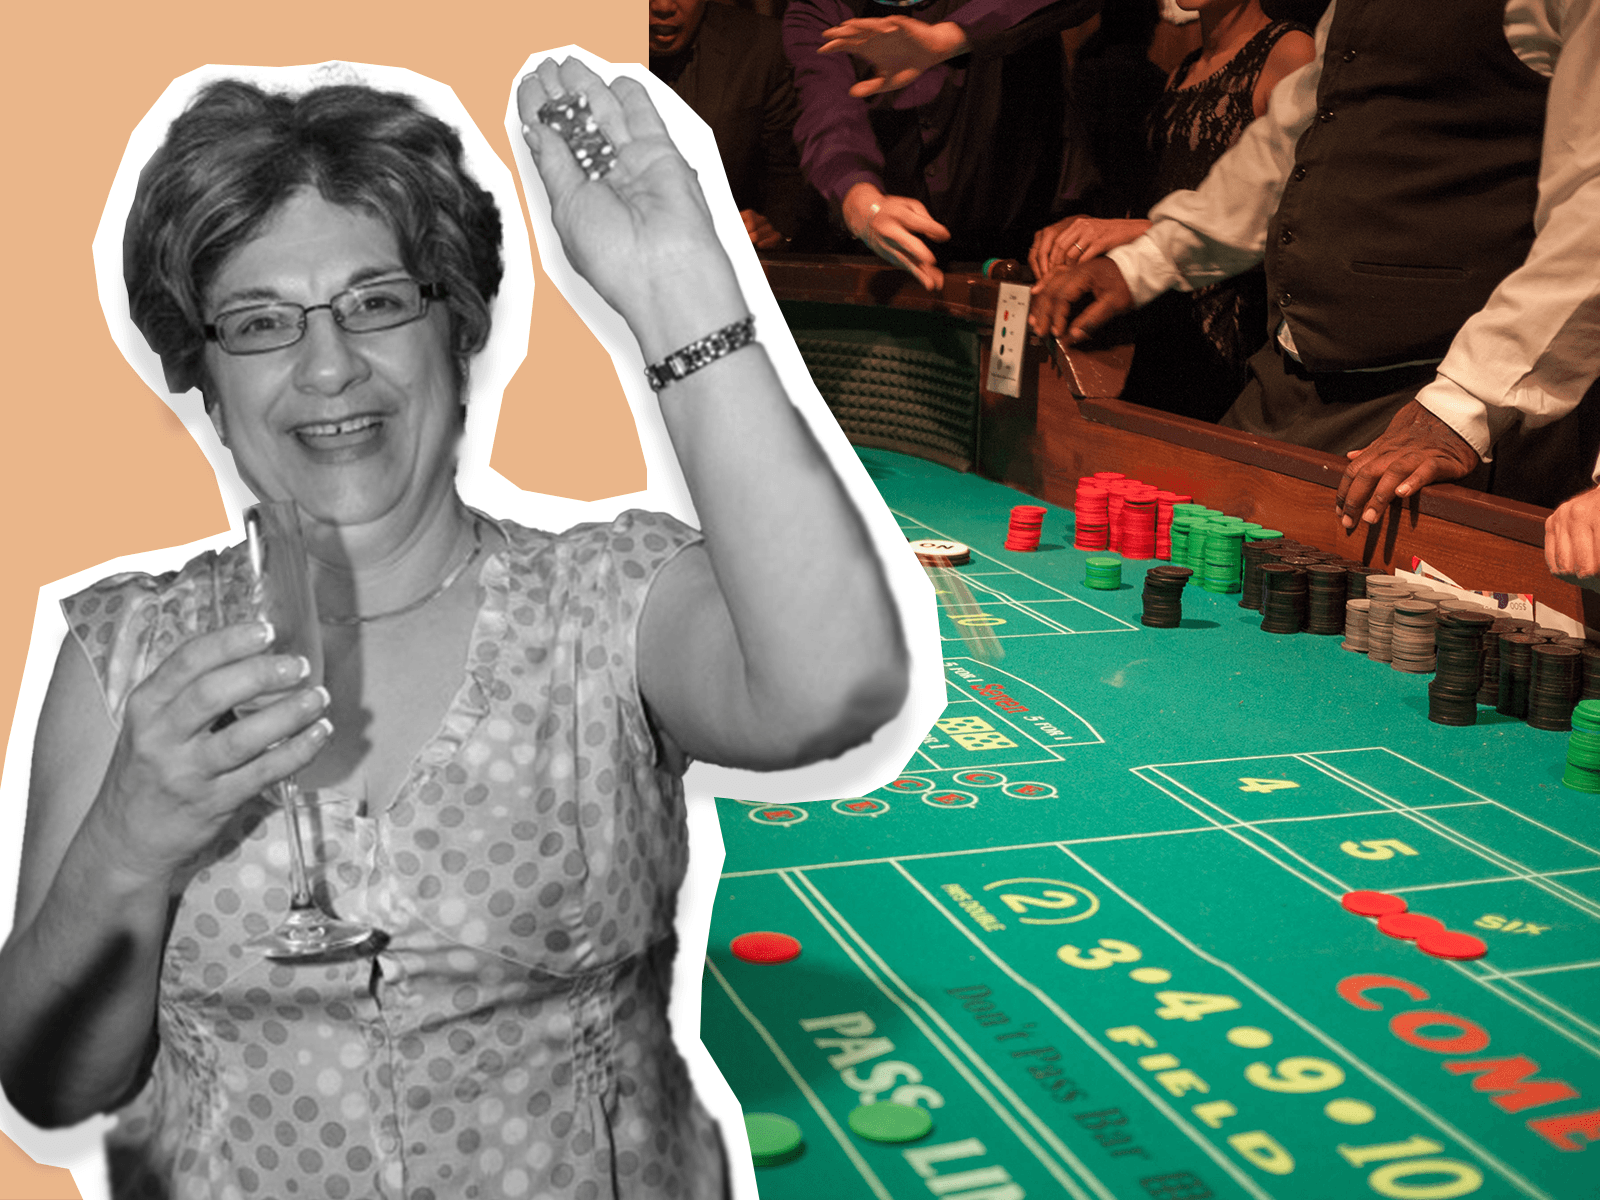 The Amazing Story Of The Grandma And The Longest Craps Roll In History